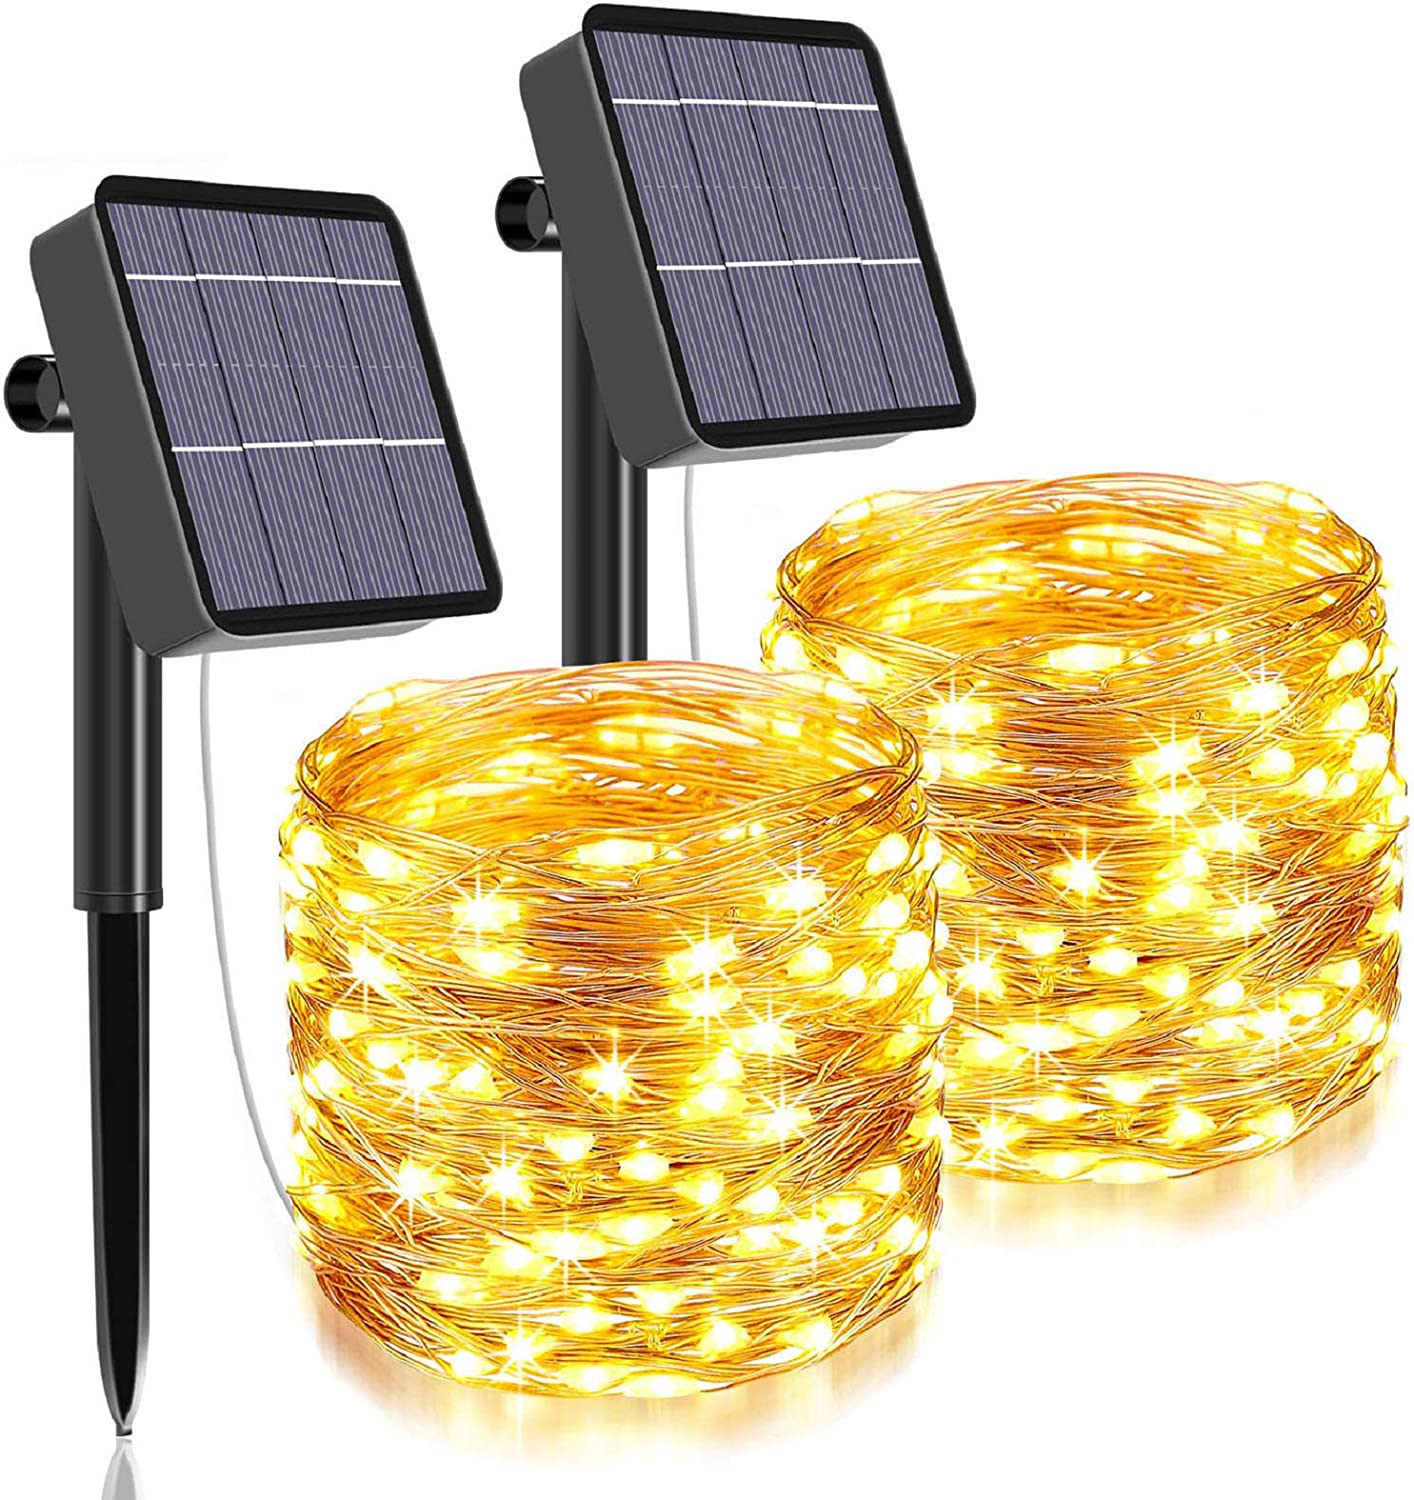 Solar String Lights Outdoor,480 LED Total&160 Ft Ultra Long Solar Light with 1200 Mah Battery Backup,8 Modes Solar Fairy Lights for Garden Patio Yard Party Decoration (2Pack- Warm White)